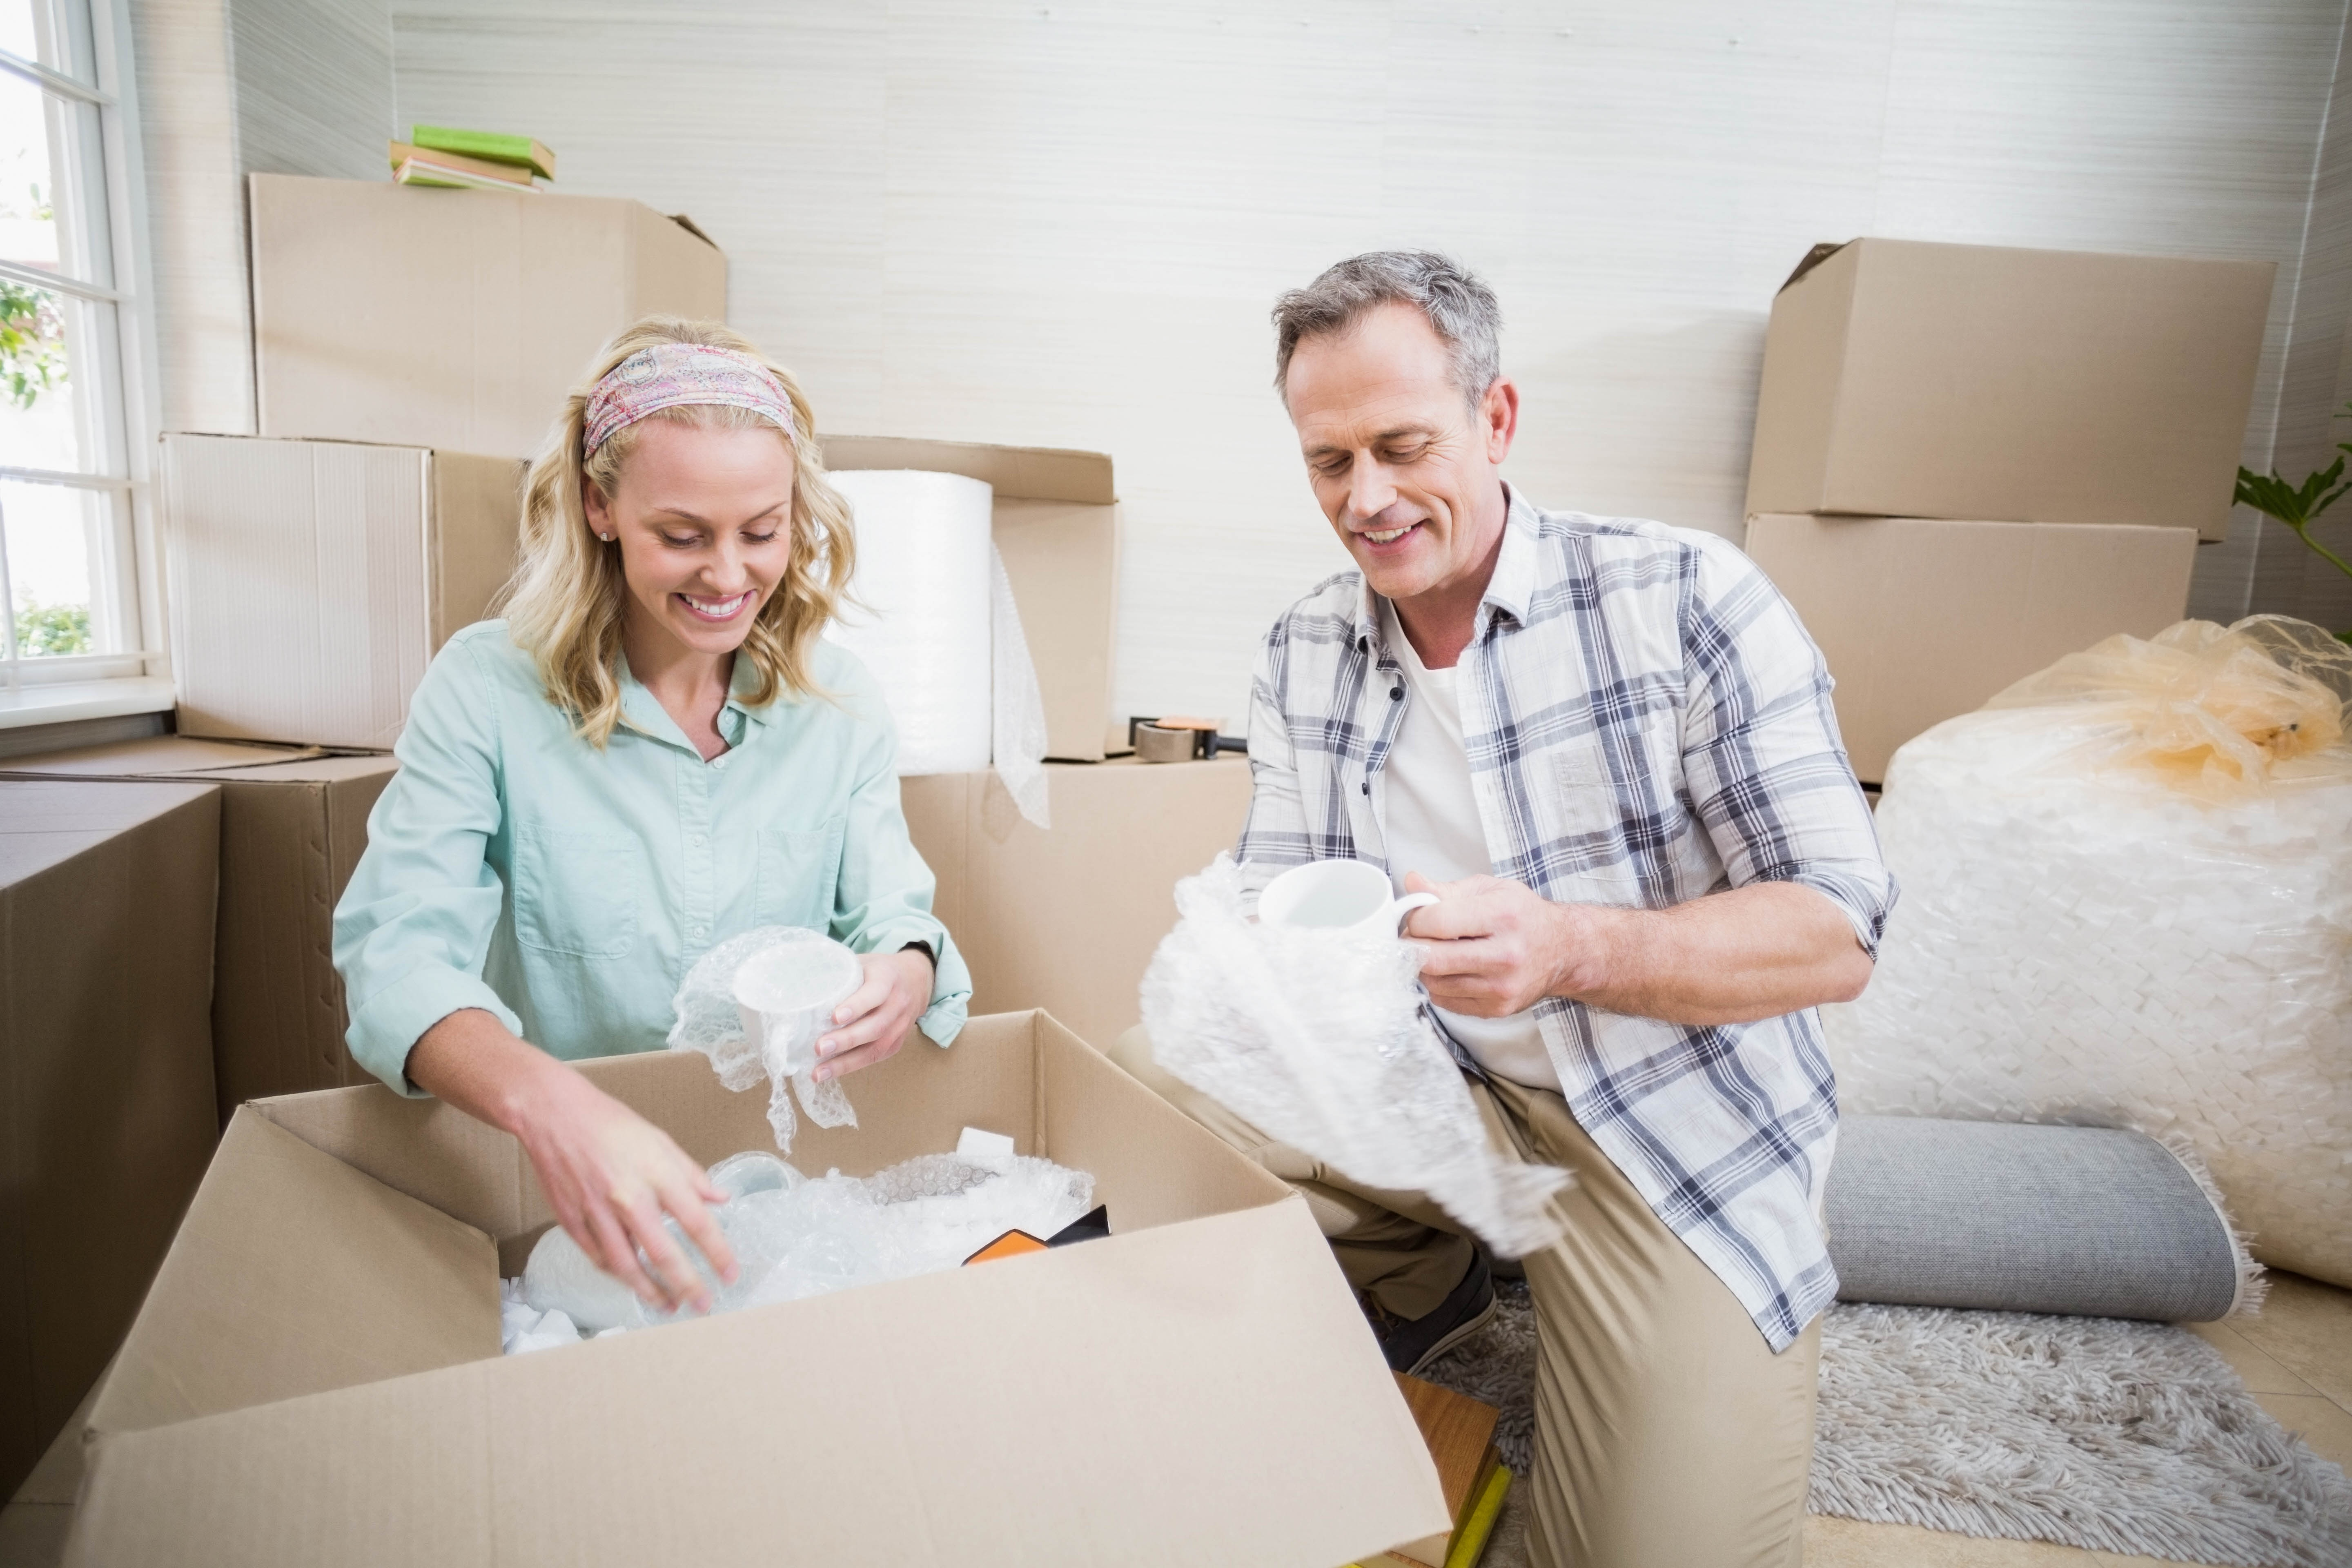 Smiling couple packing mug in a box